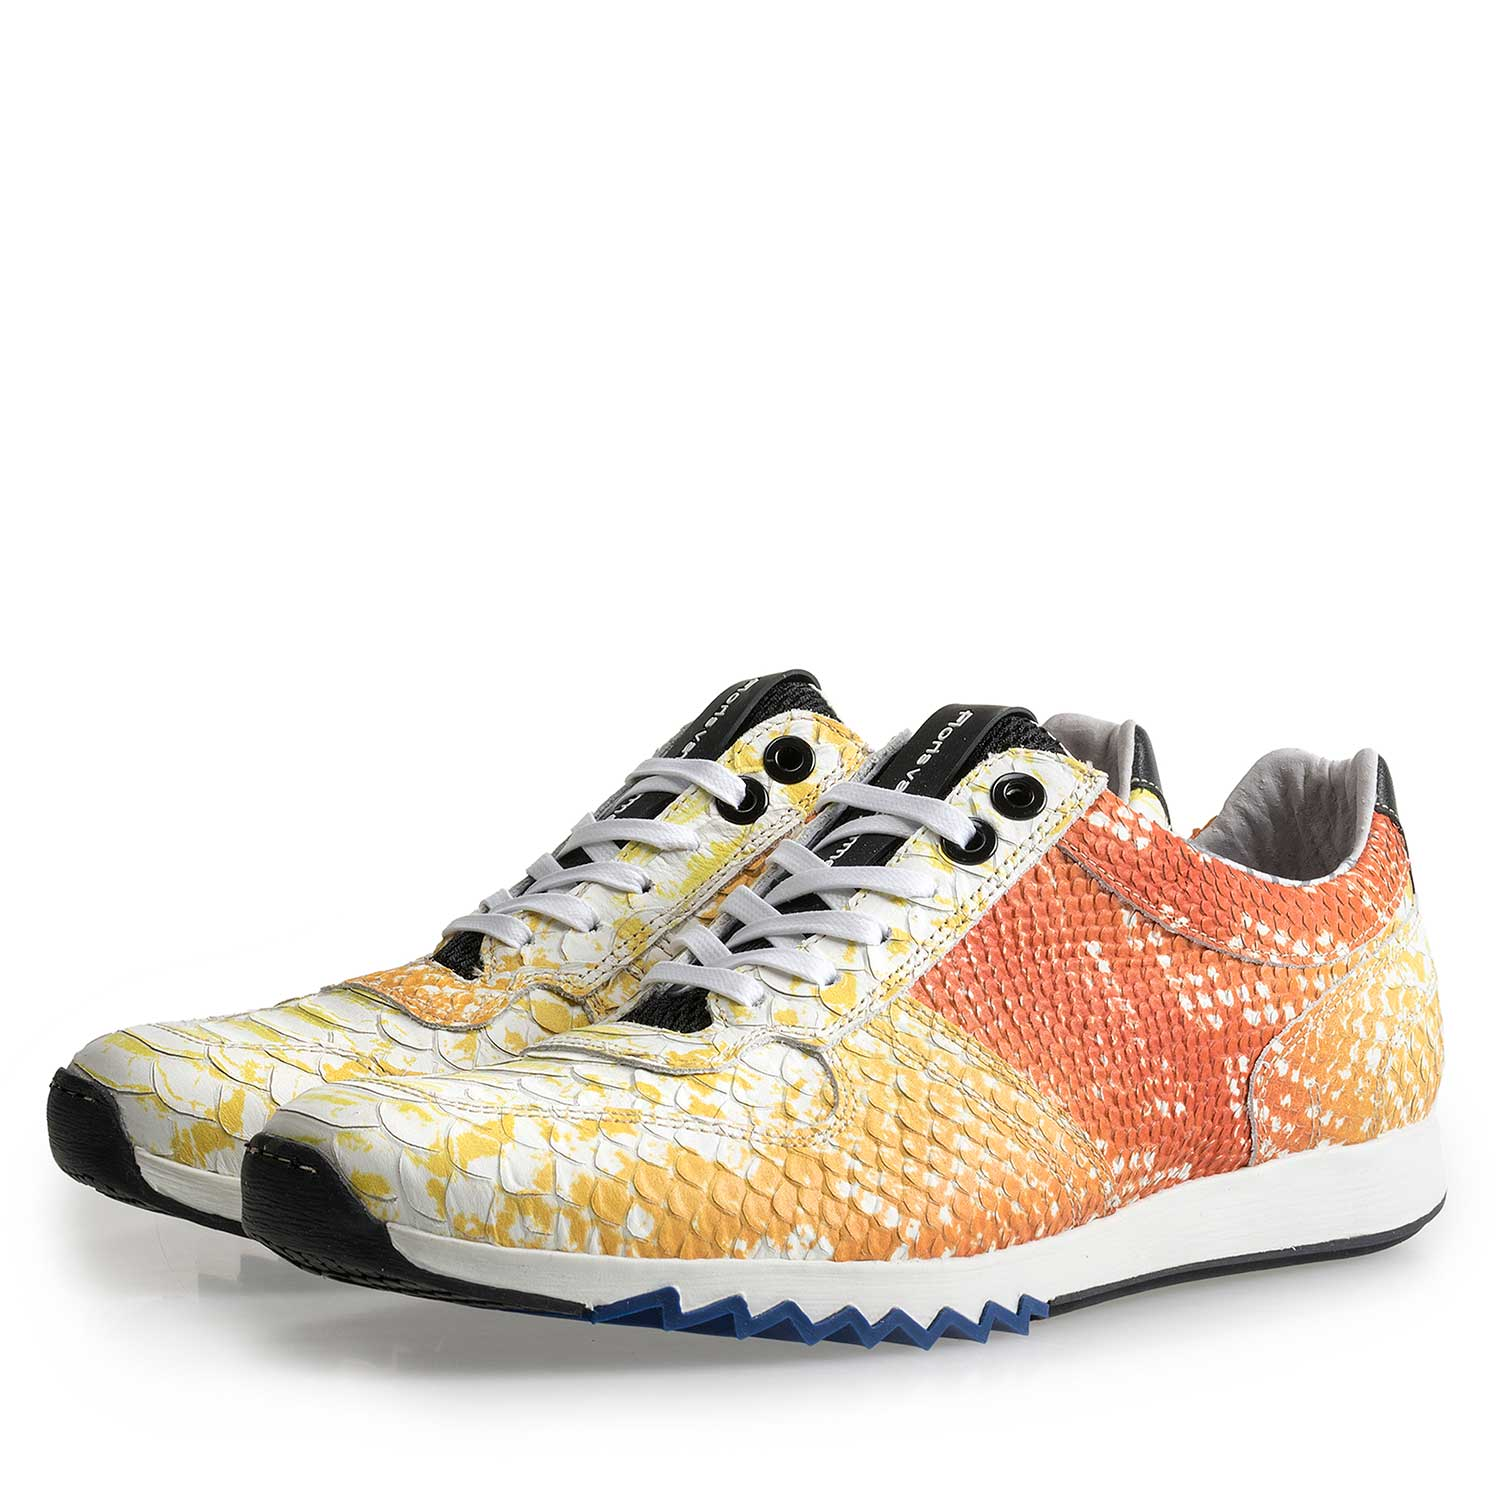 16227/12 - Yellow leather sneaker with a snake pattern